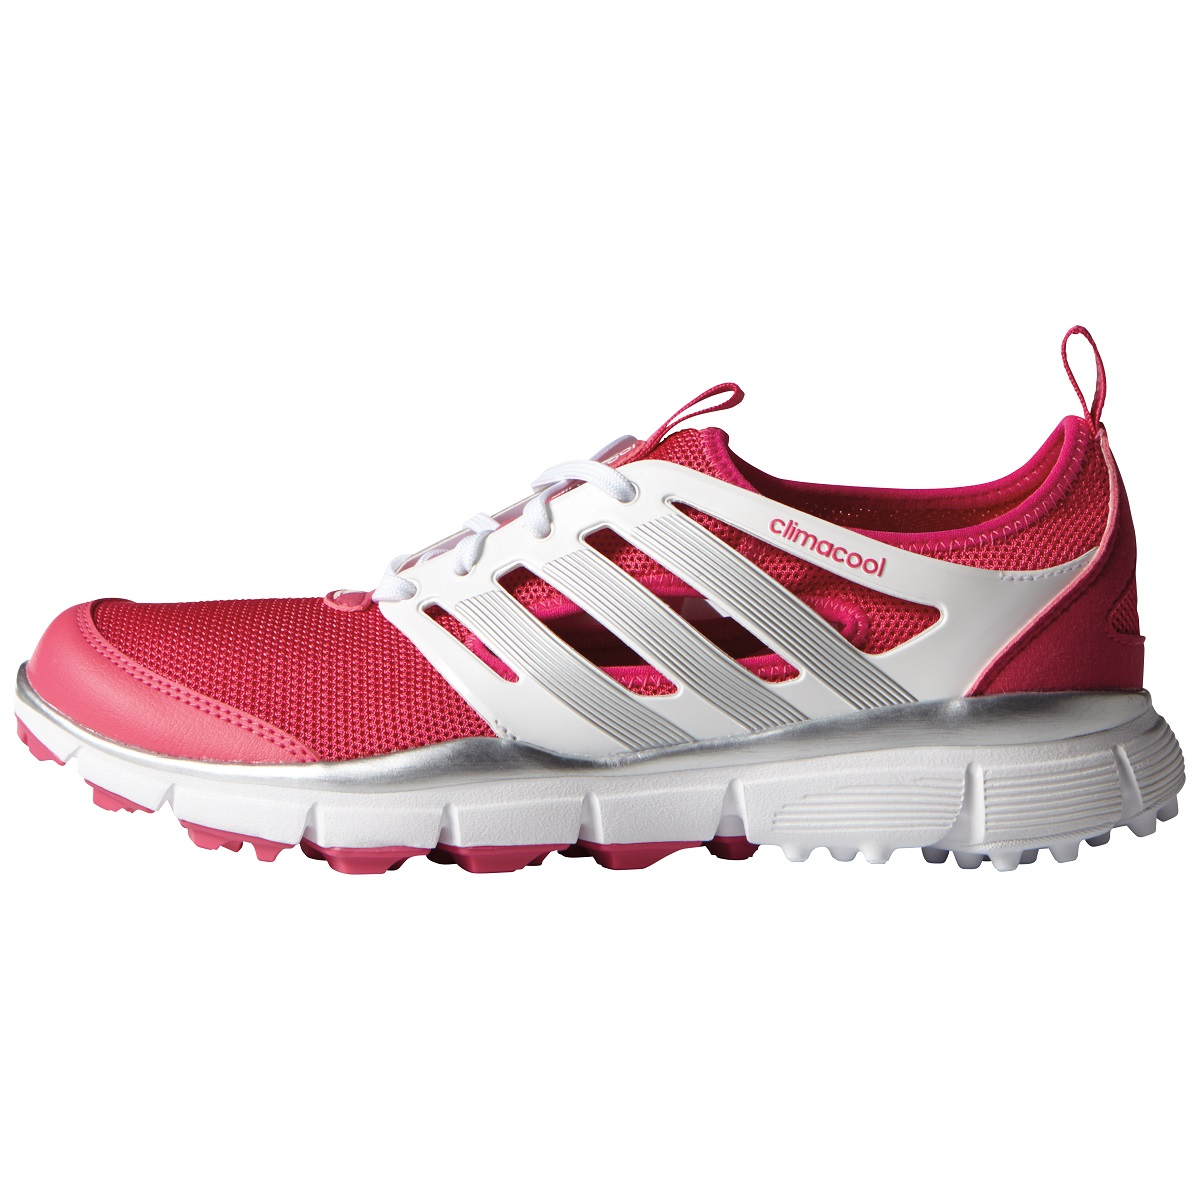 Adidas Climacool Golf Shoes Canada